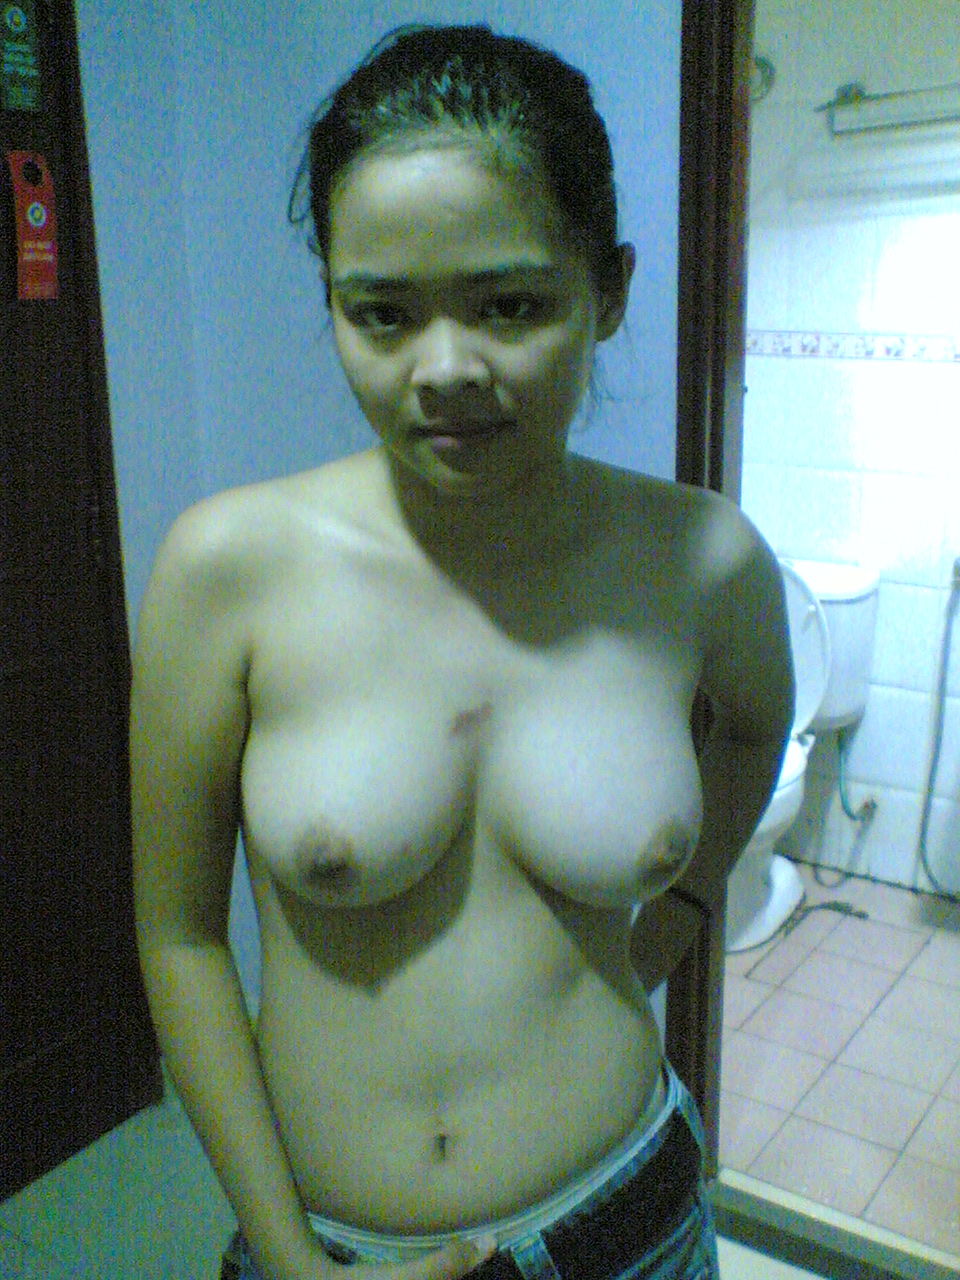 Cute Malaysian girl show off pink pussy and big boobs  Spreadeagle Spoon Shaved Pussy Ethnic Asian Female Amateur